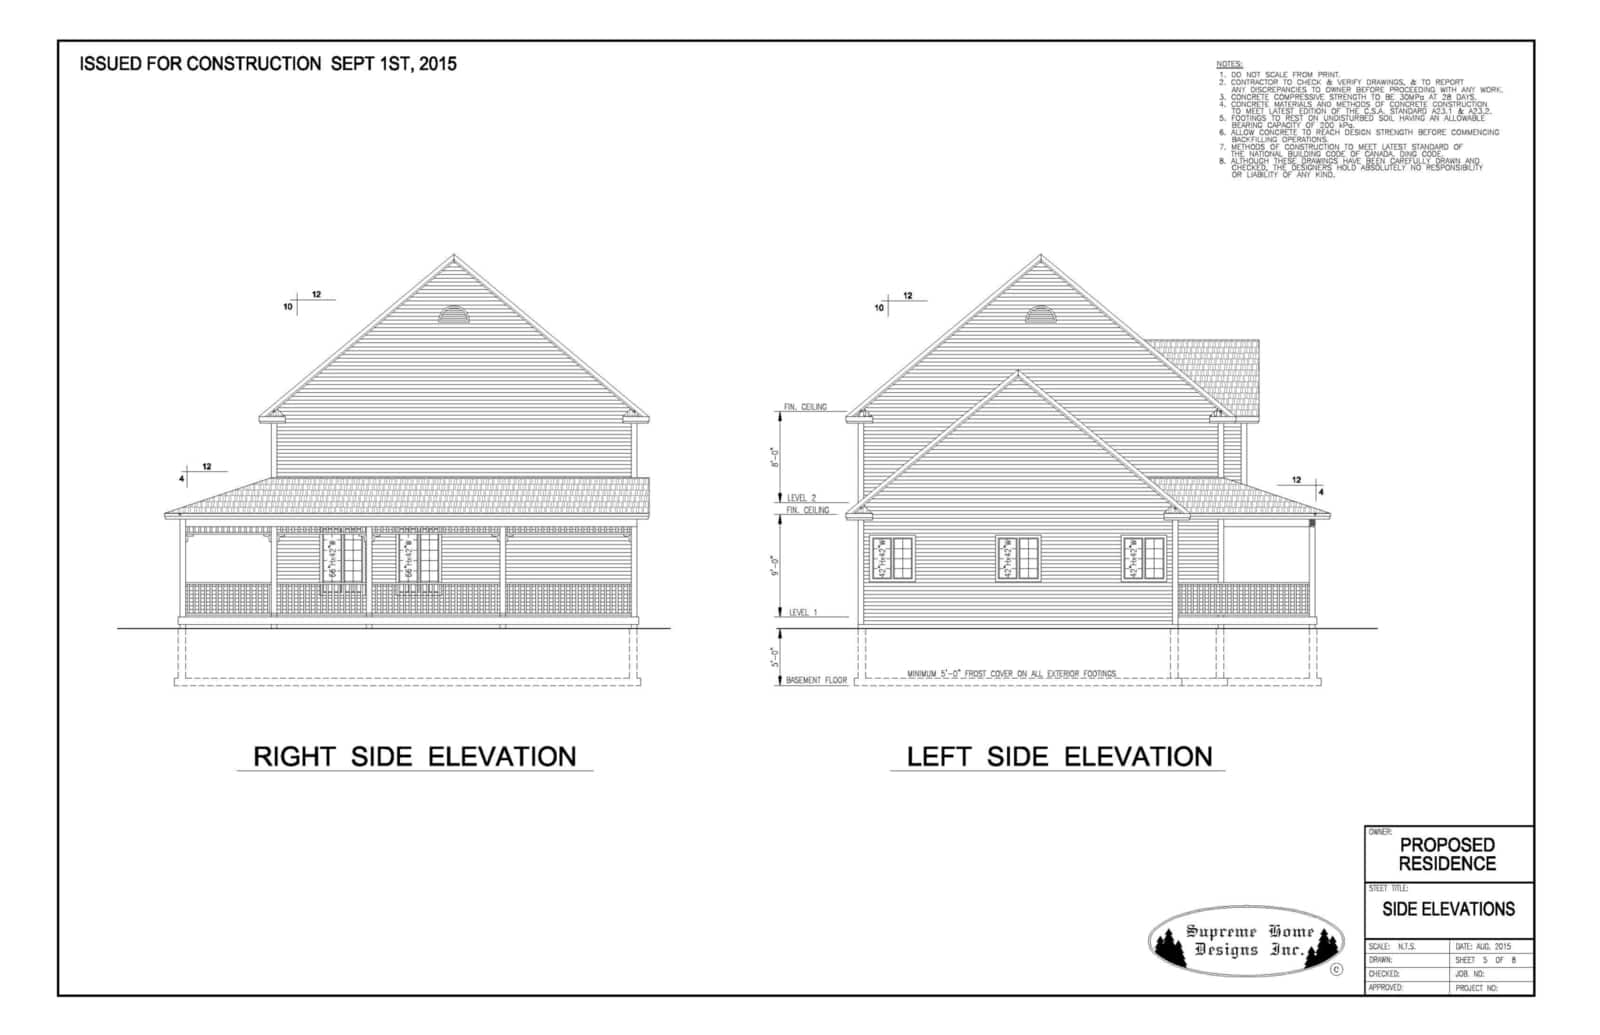 Supreme Home Designs Inc - Opening Hours - PO Box 1222, Goulds, NL